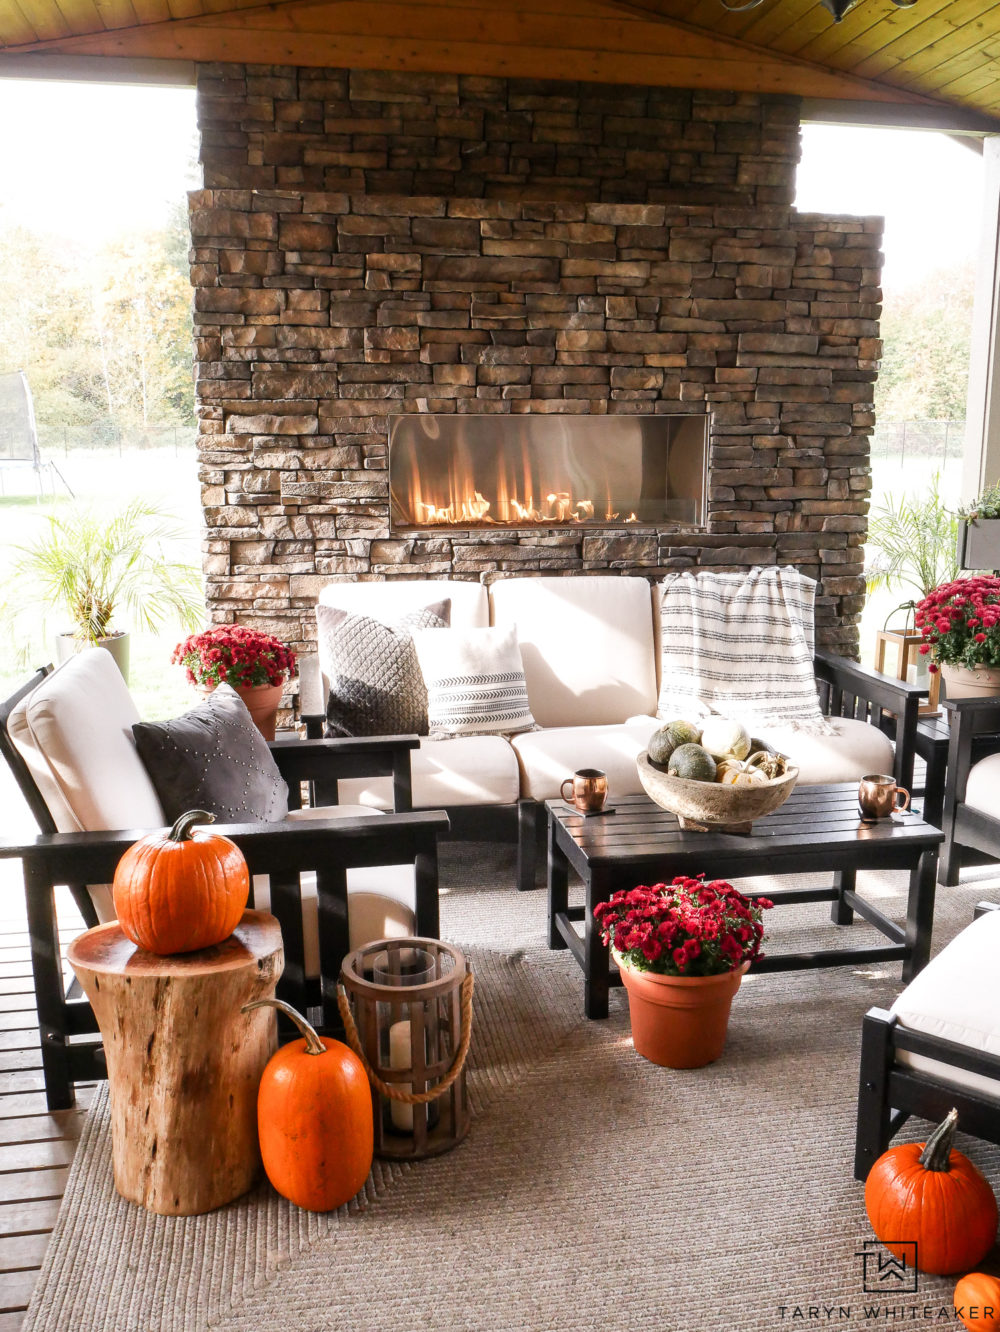 Beautiful outdoor living space all decorated for autumn with pops of orange pumpkins and red mums!